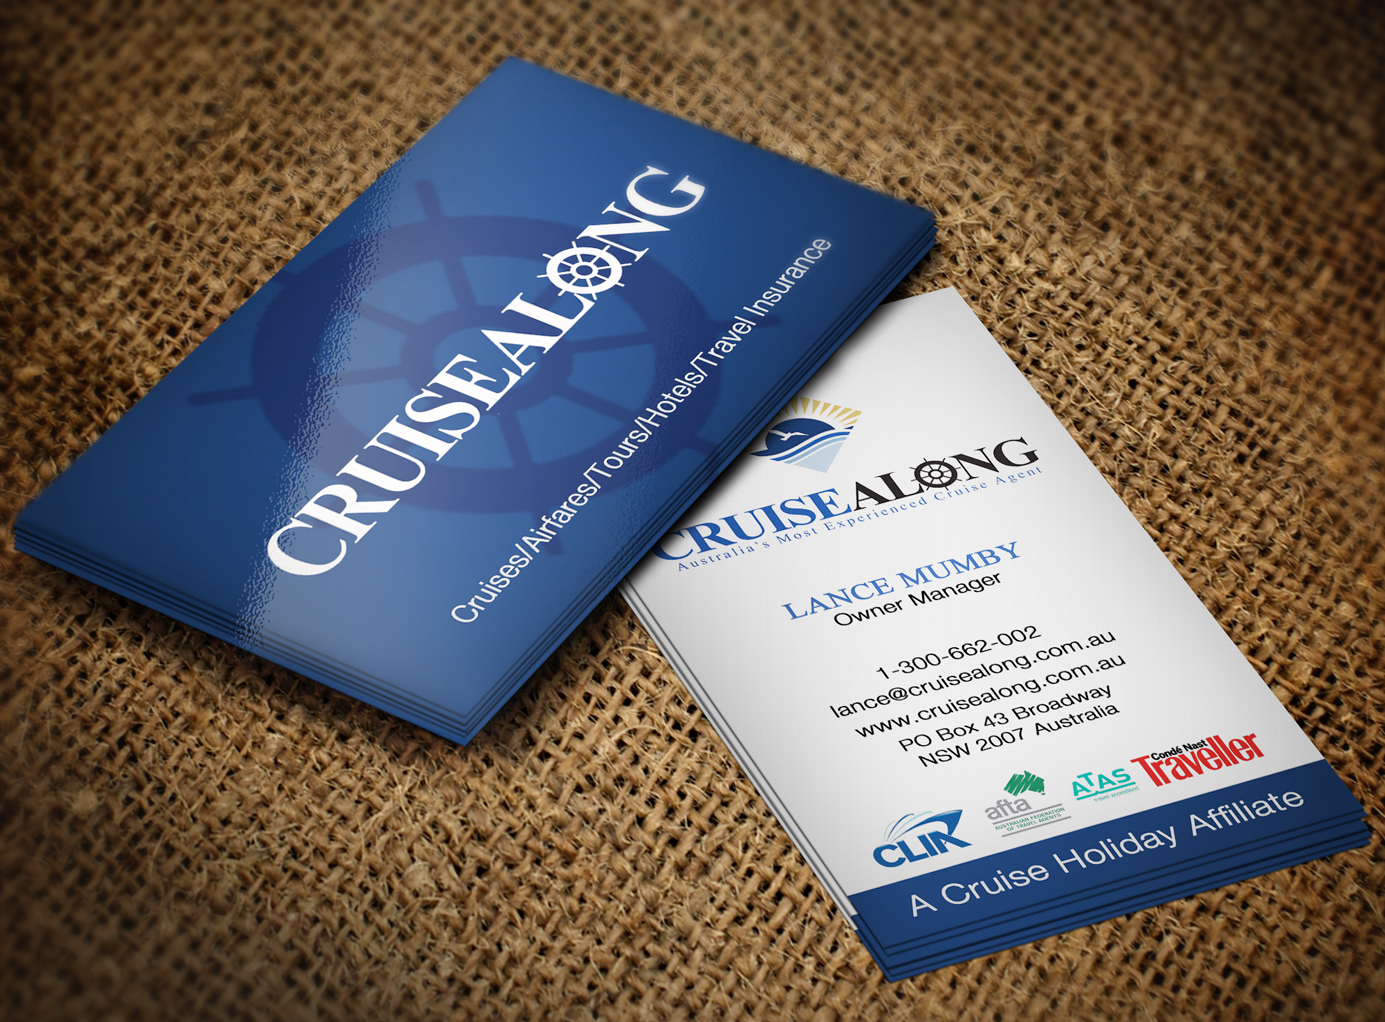 Elegant playful insurance business card design for cruisealong pty business card design by creation lanka for cruisealong pty ltd design 5623621 colourmoves